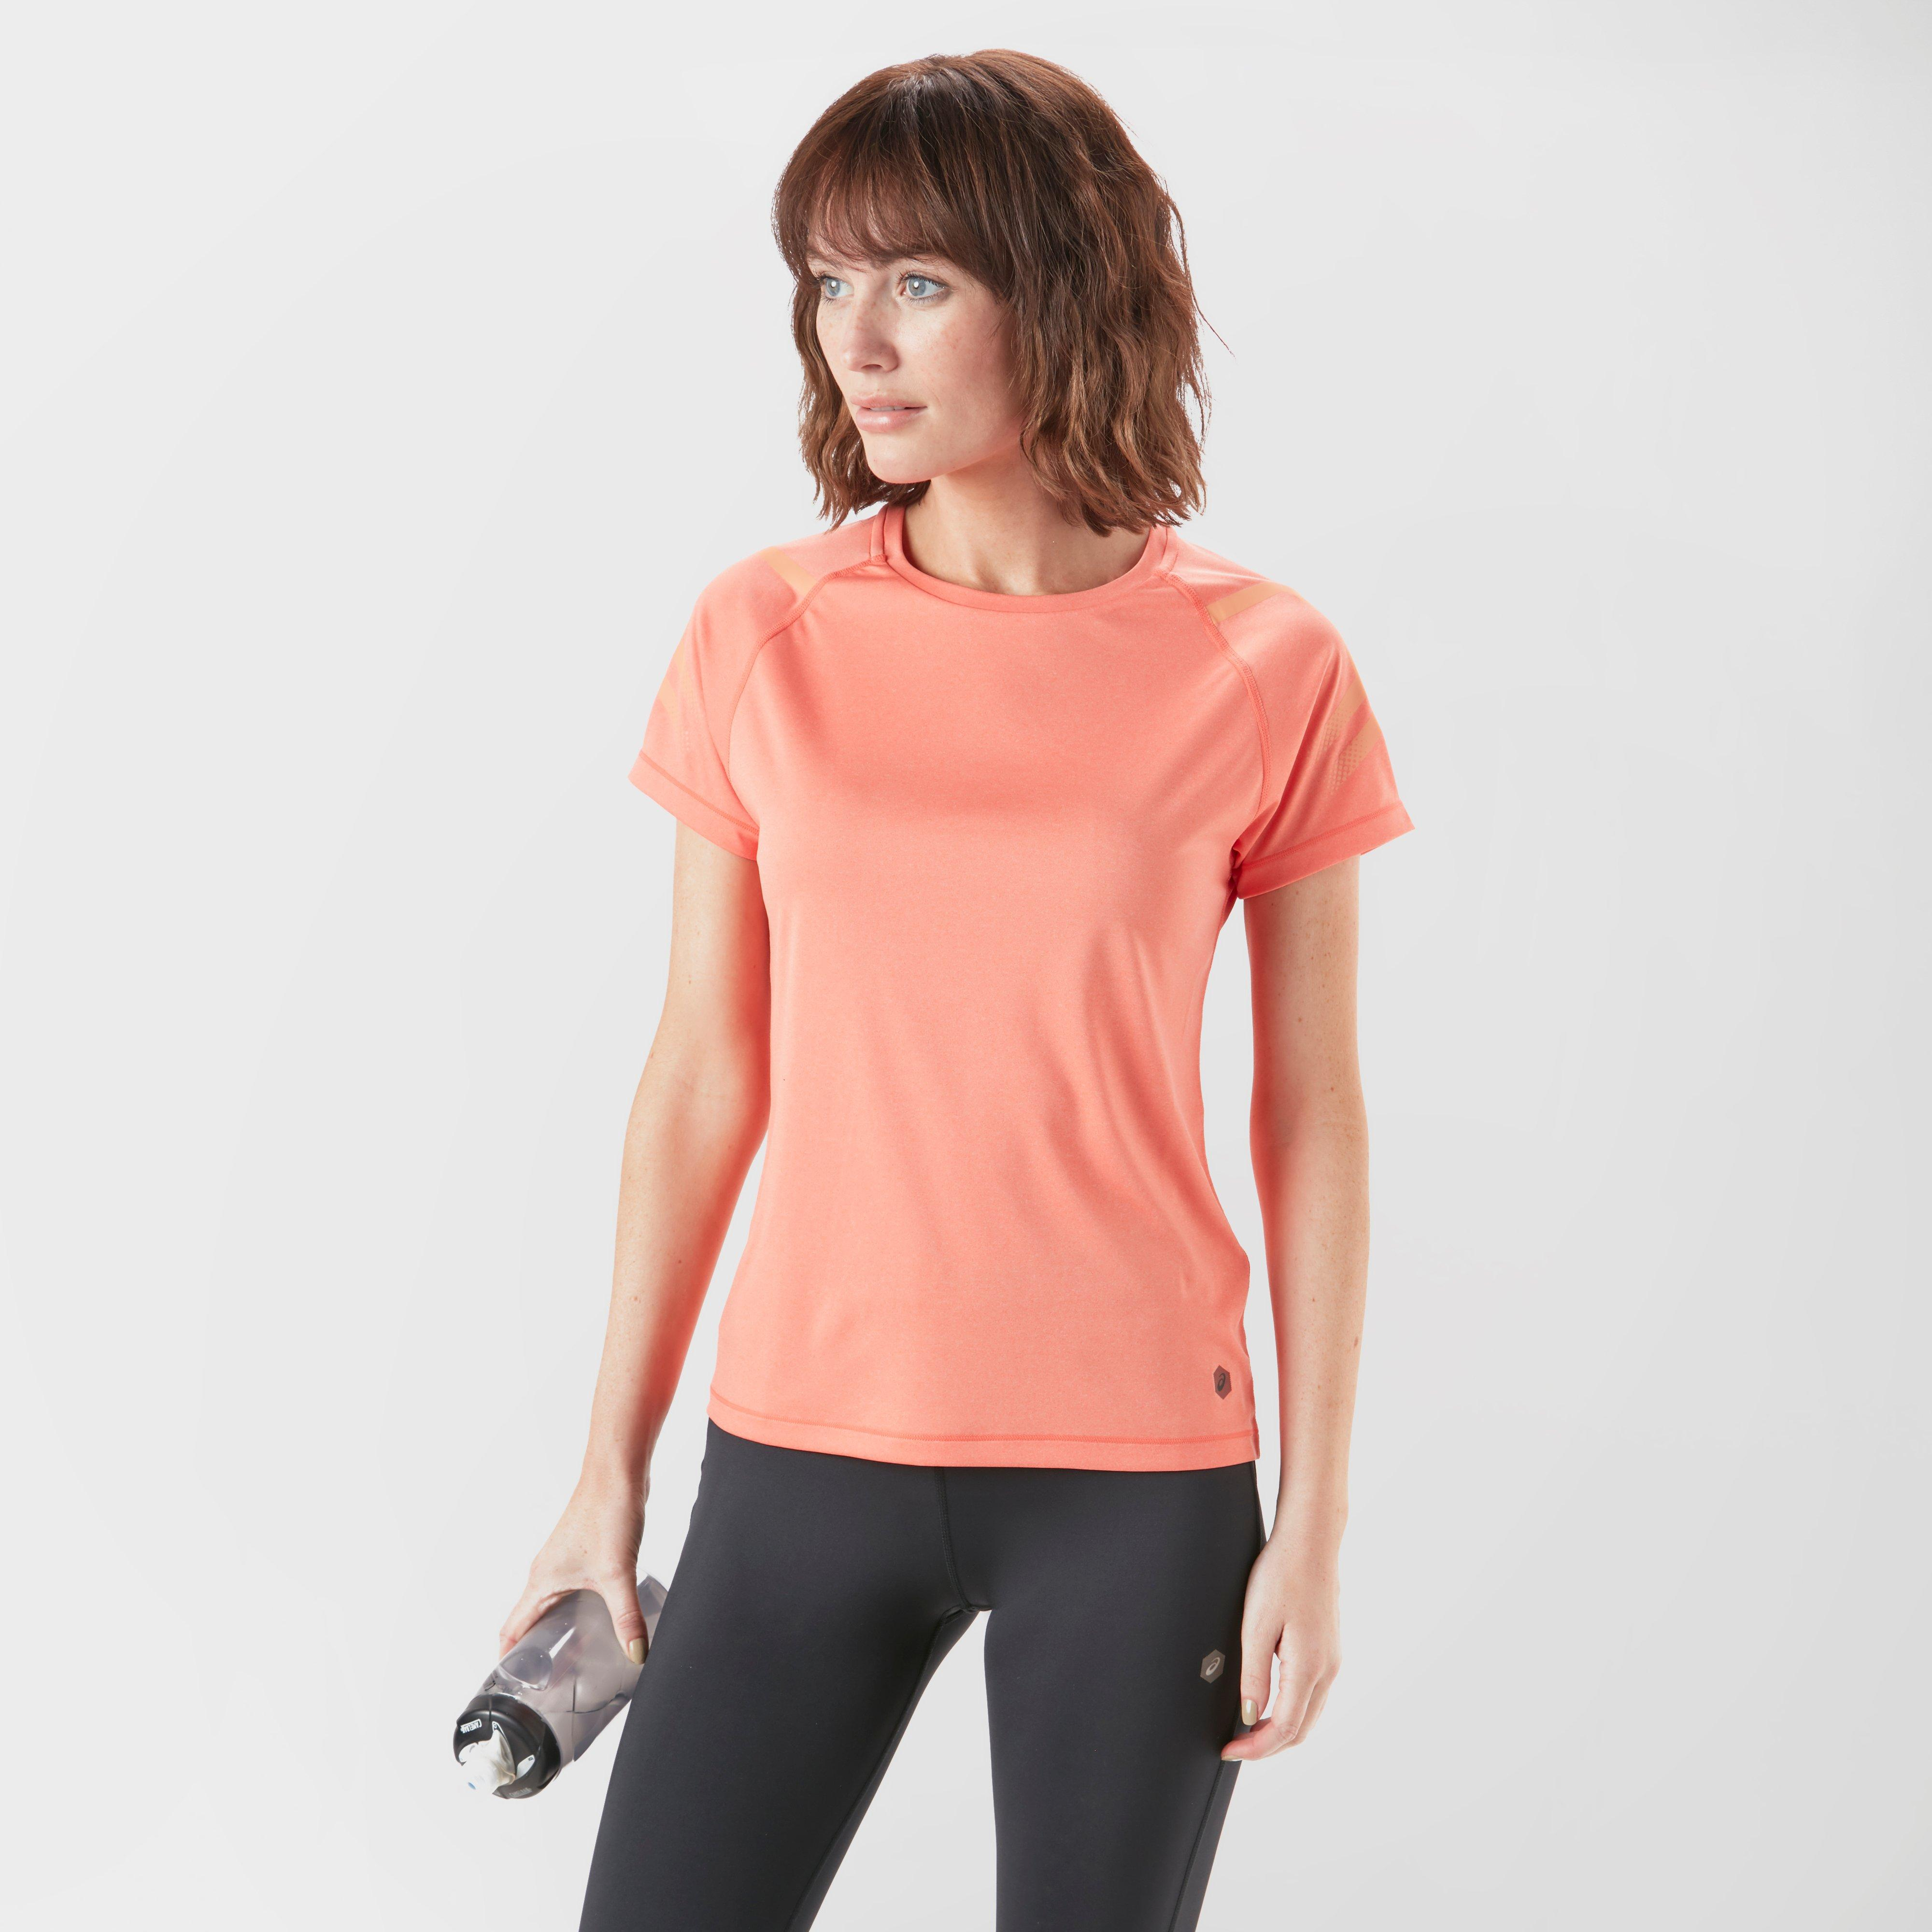 Asics Women's Icon T-Shirt, Coral